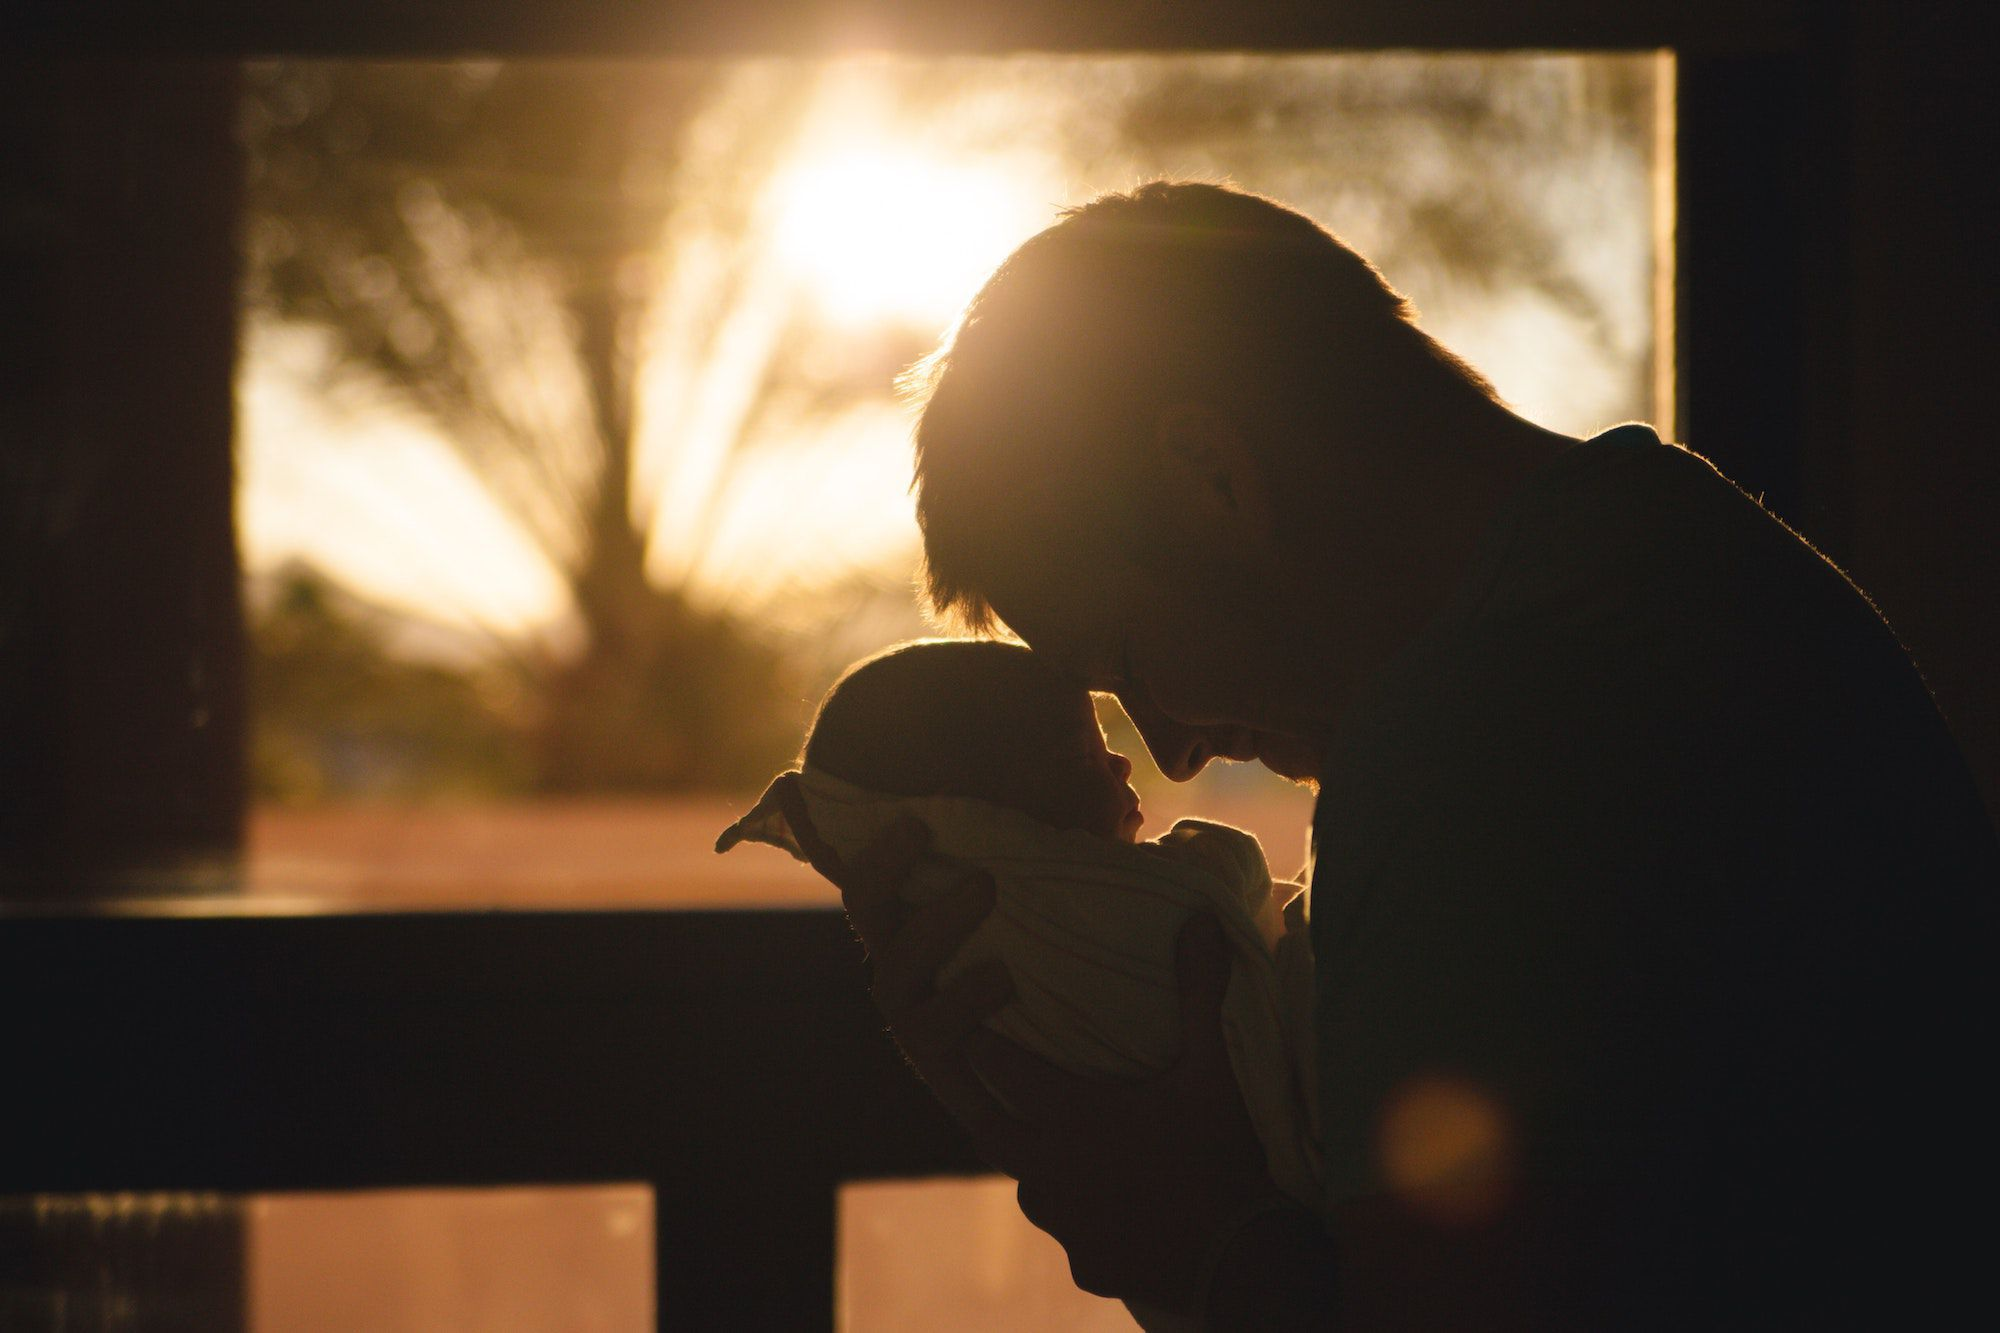 Does the Father's Age Matter in Pregnancy? 3 Reasons It Does